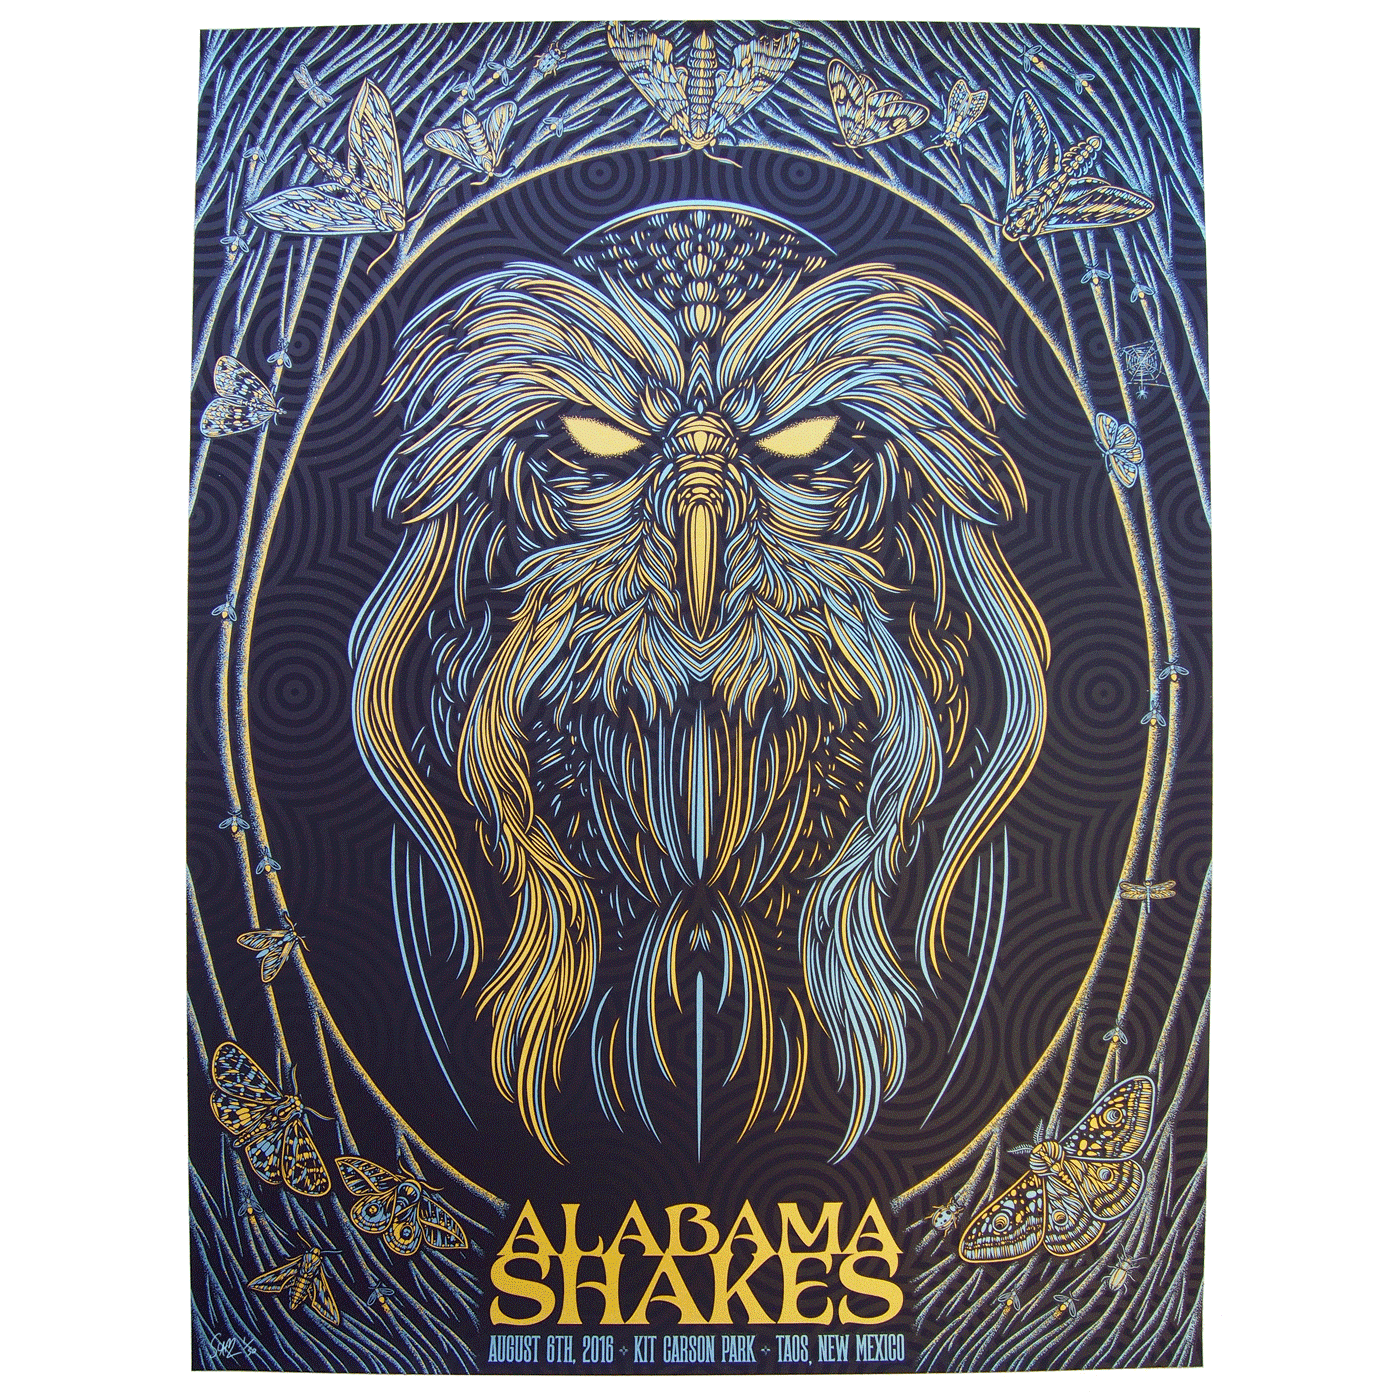 """Alabama Shakes - Taos, NM 2016"" by Todd Slater.  18"" x 24"" 3-color Screenprint.  Artist edition of 50 S/N.  $75"